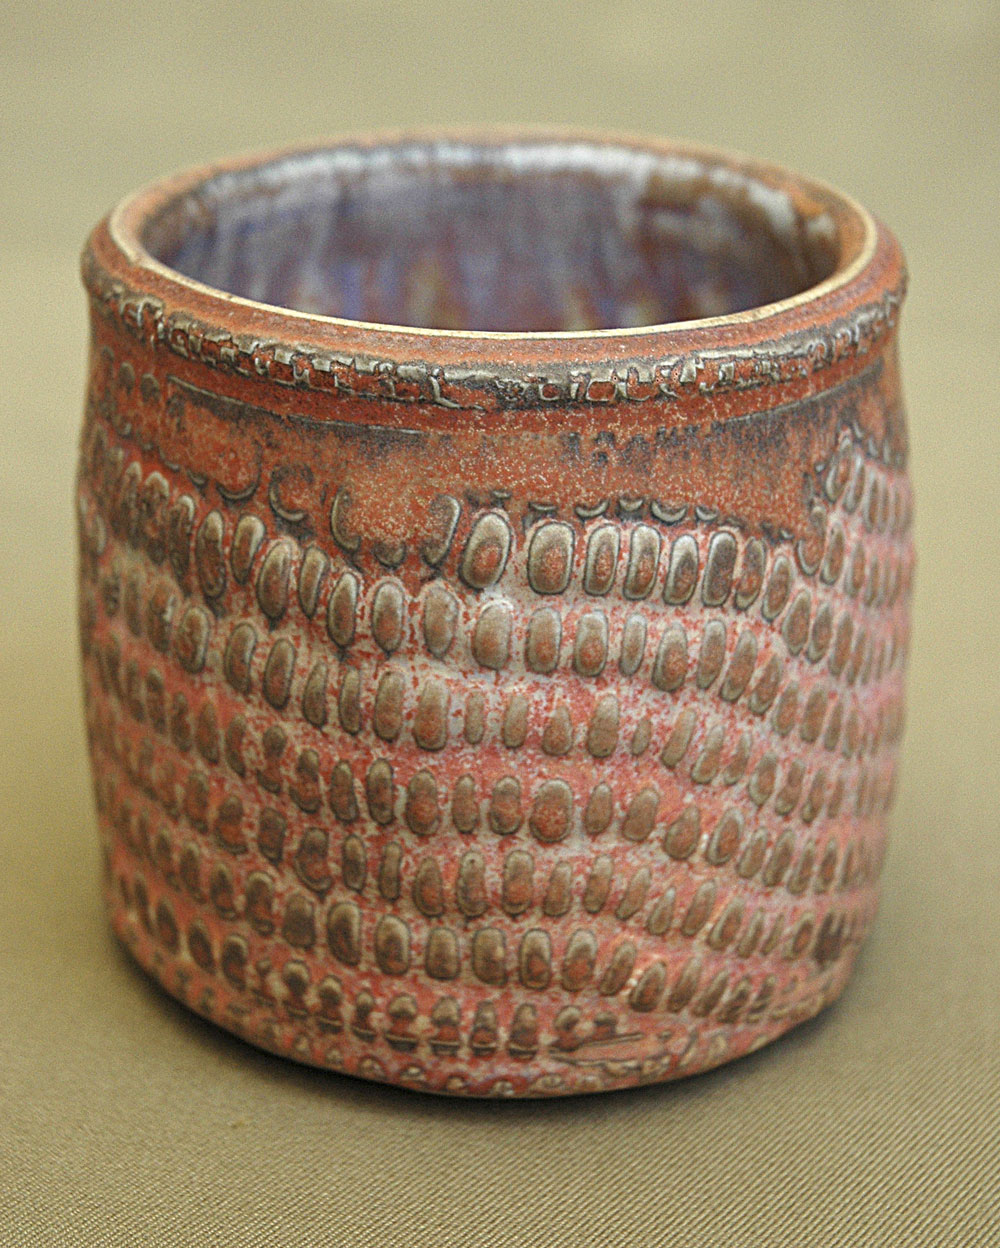 "cupp with corn texture - 3"" x 3"" - layered glazes"